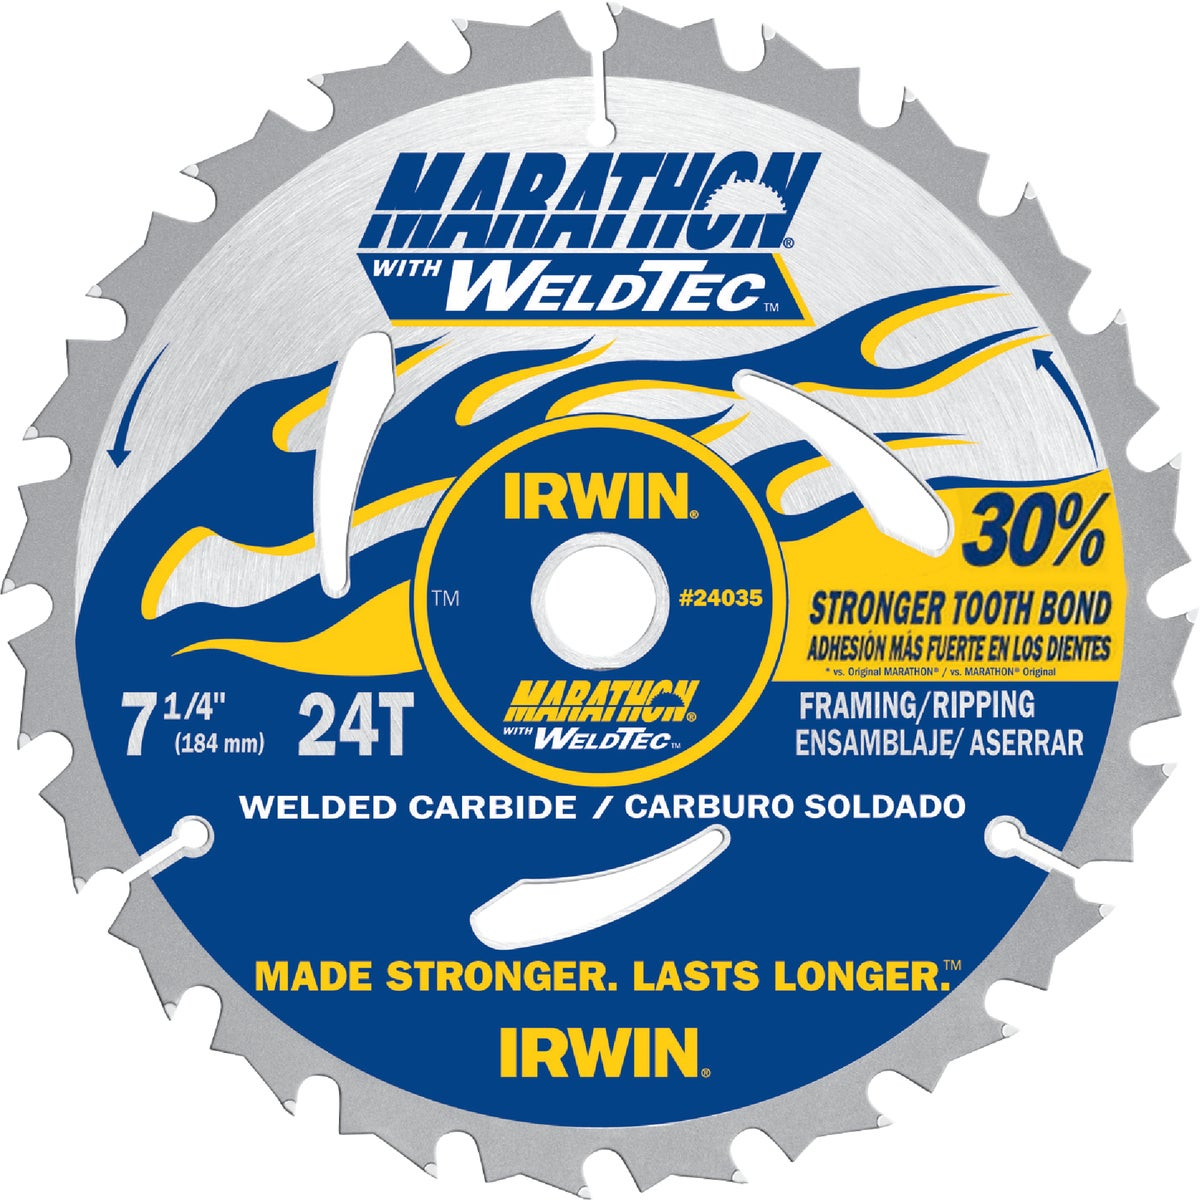 "7-1/4"" MARATHON WELDTEC - 24035 by Irwin Industr Tool"